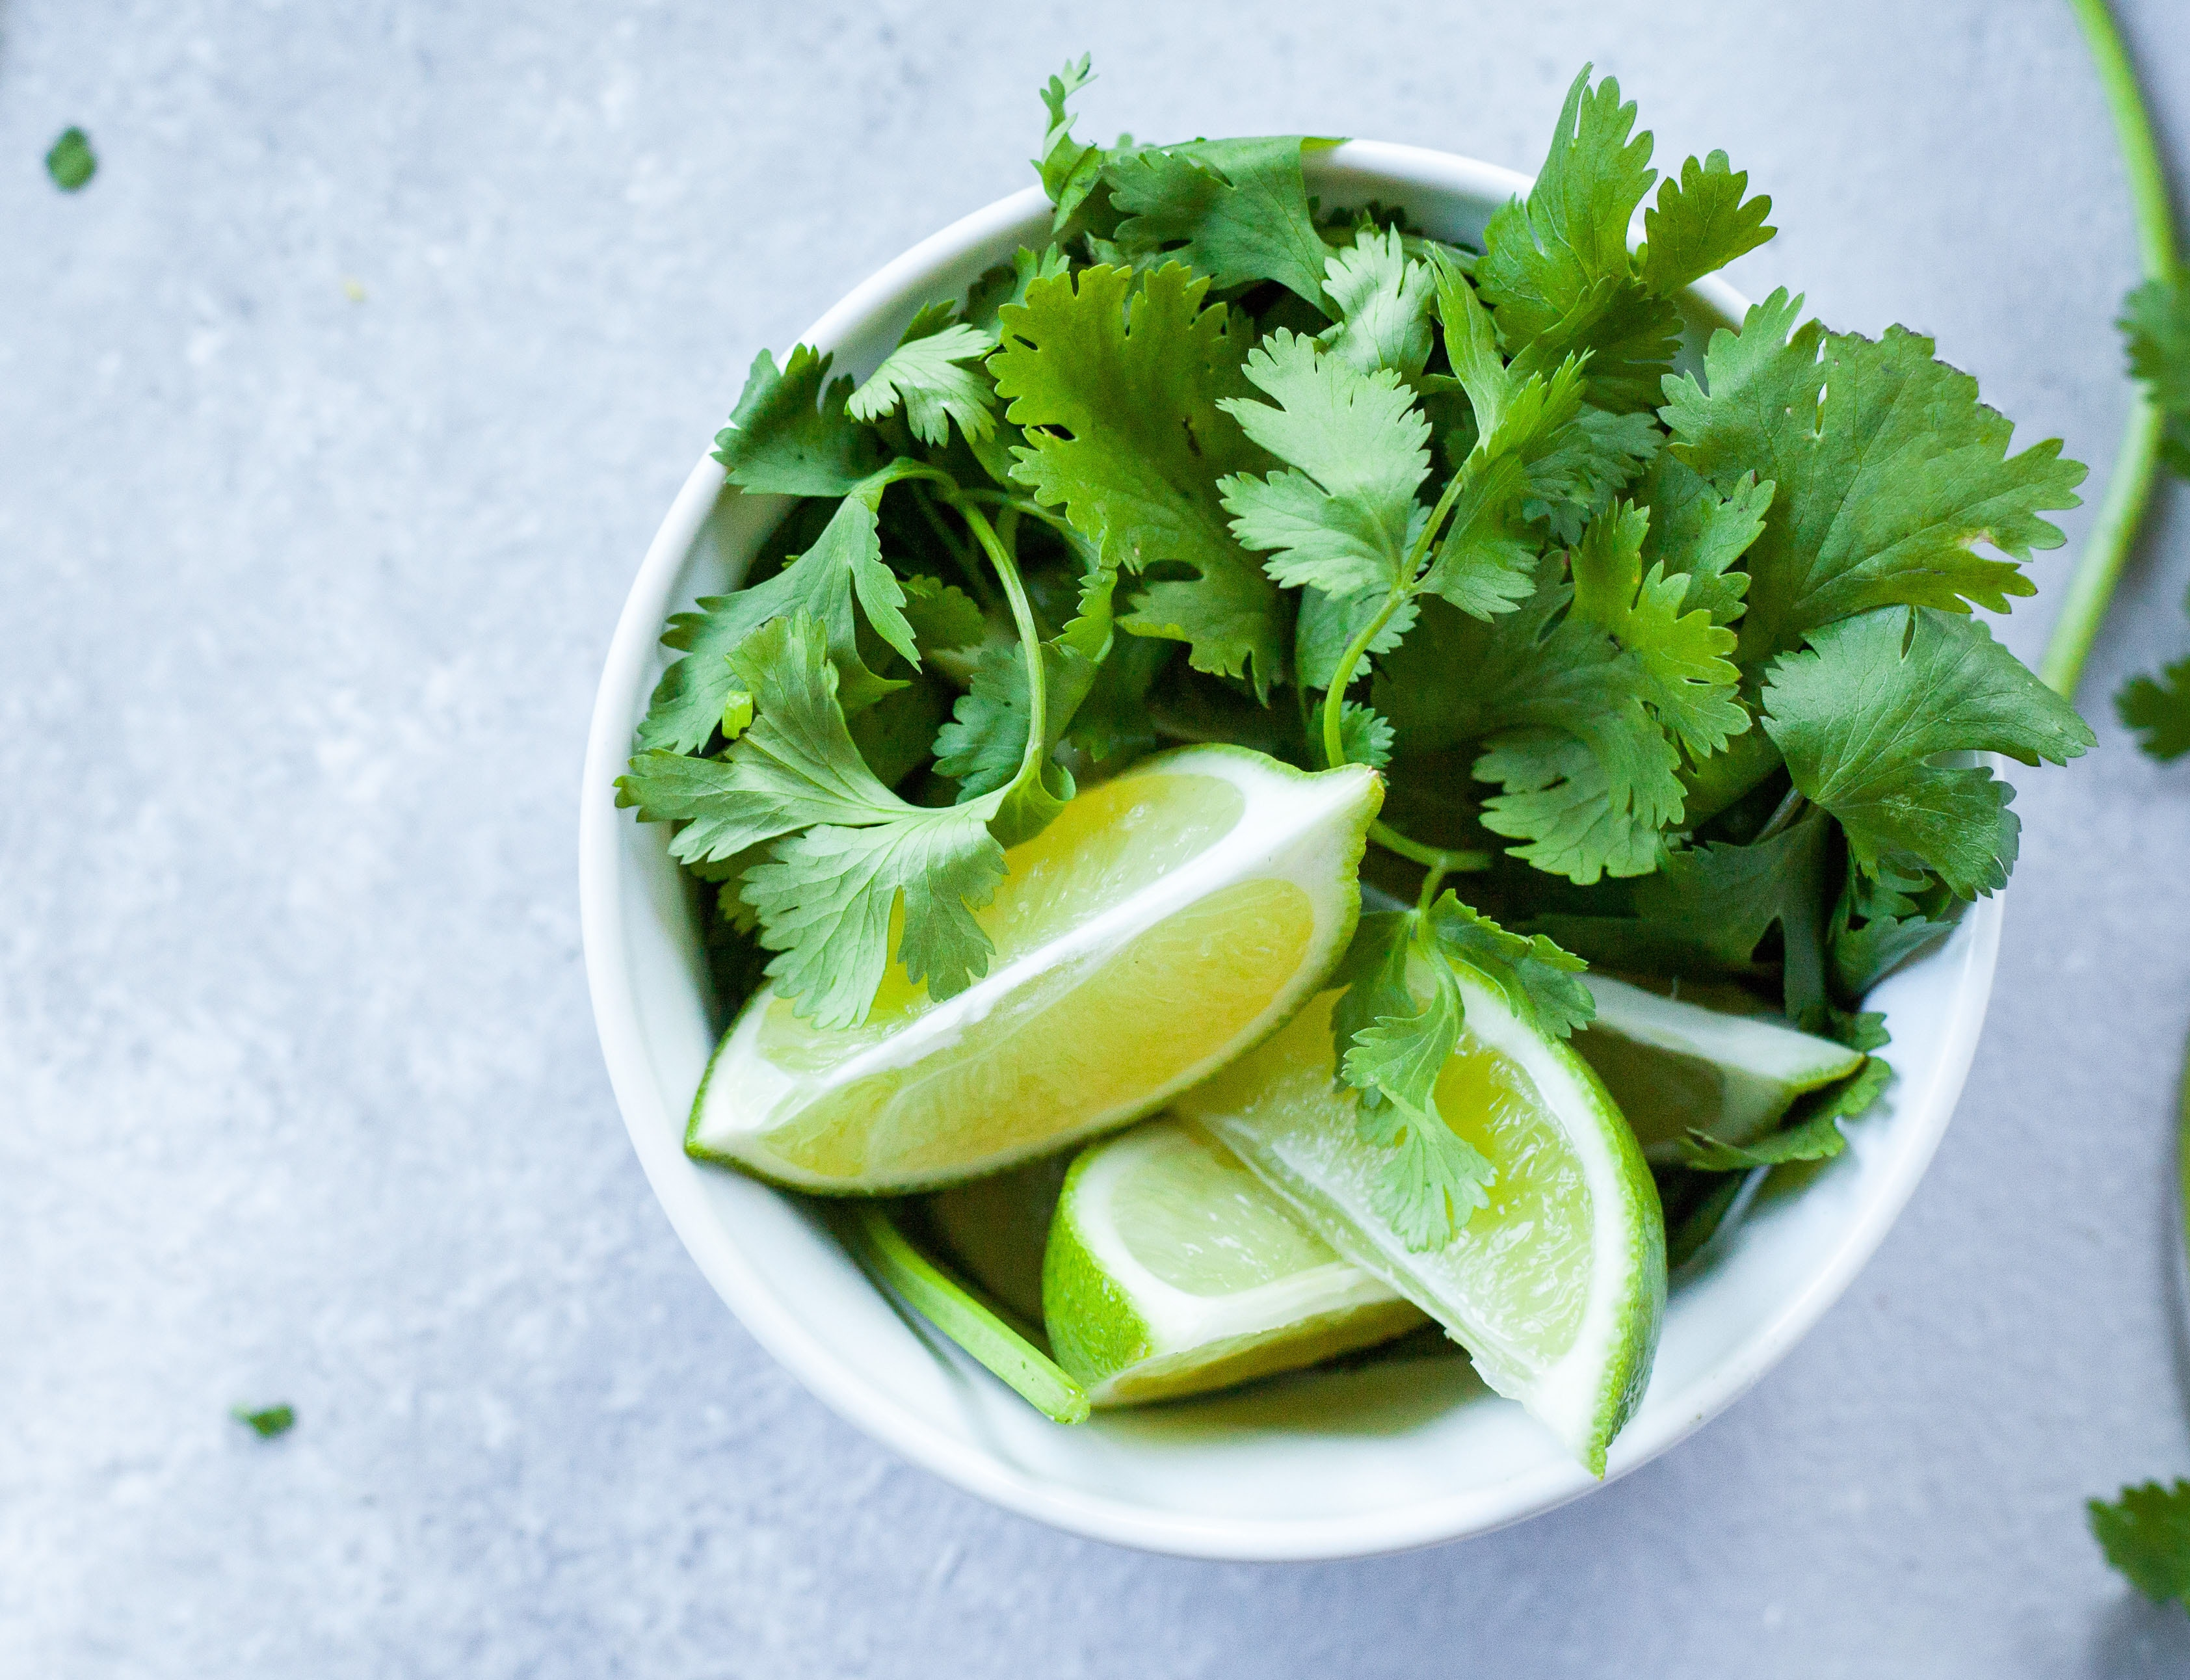 bowl of cilantro leaves and sliced limes